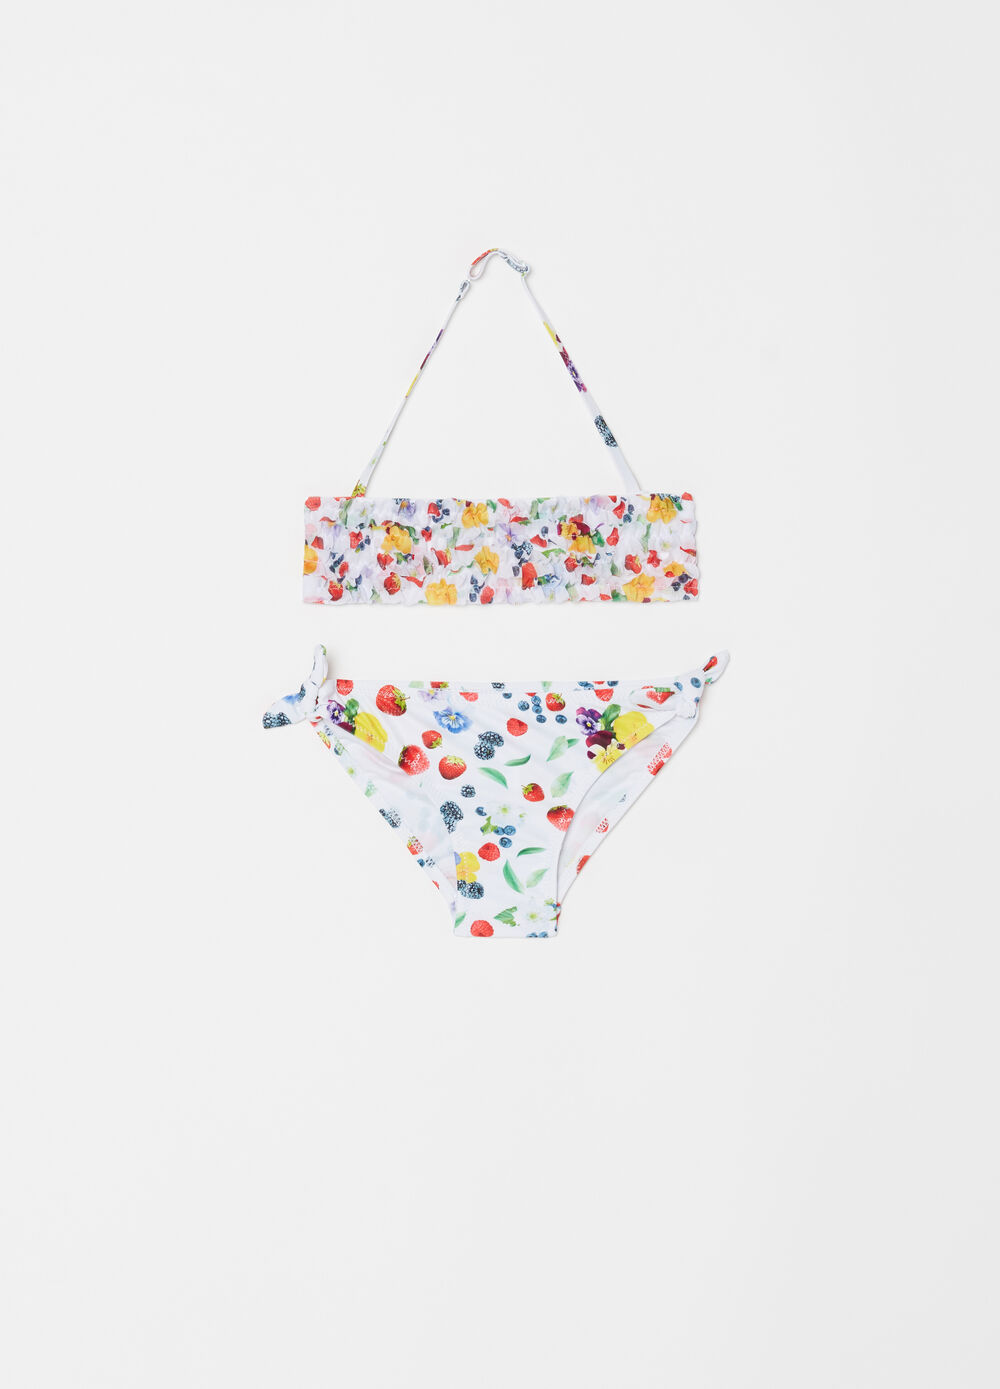 Bikini top and briefs with fruit motif pattern